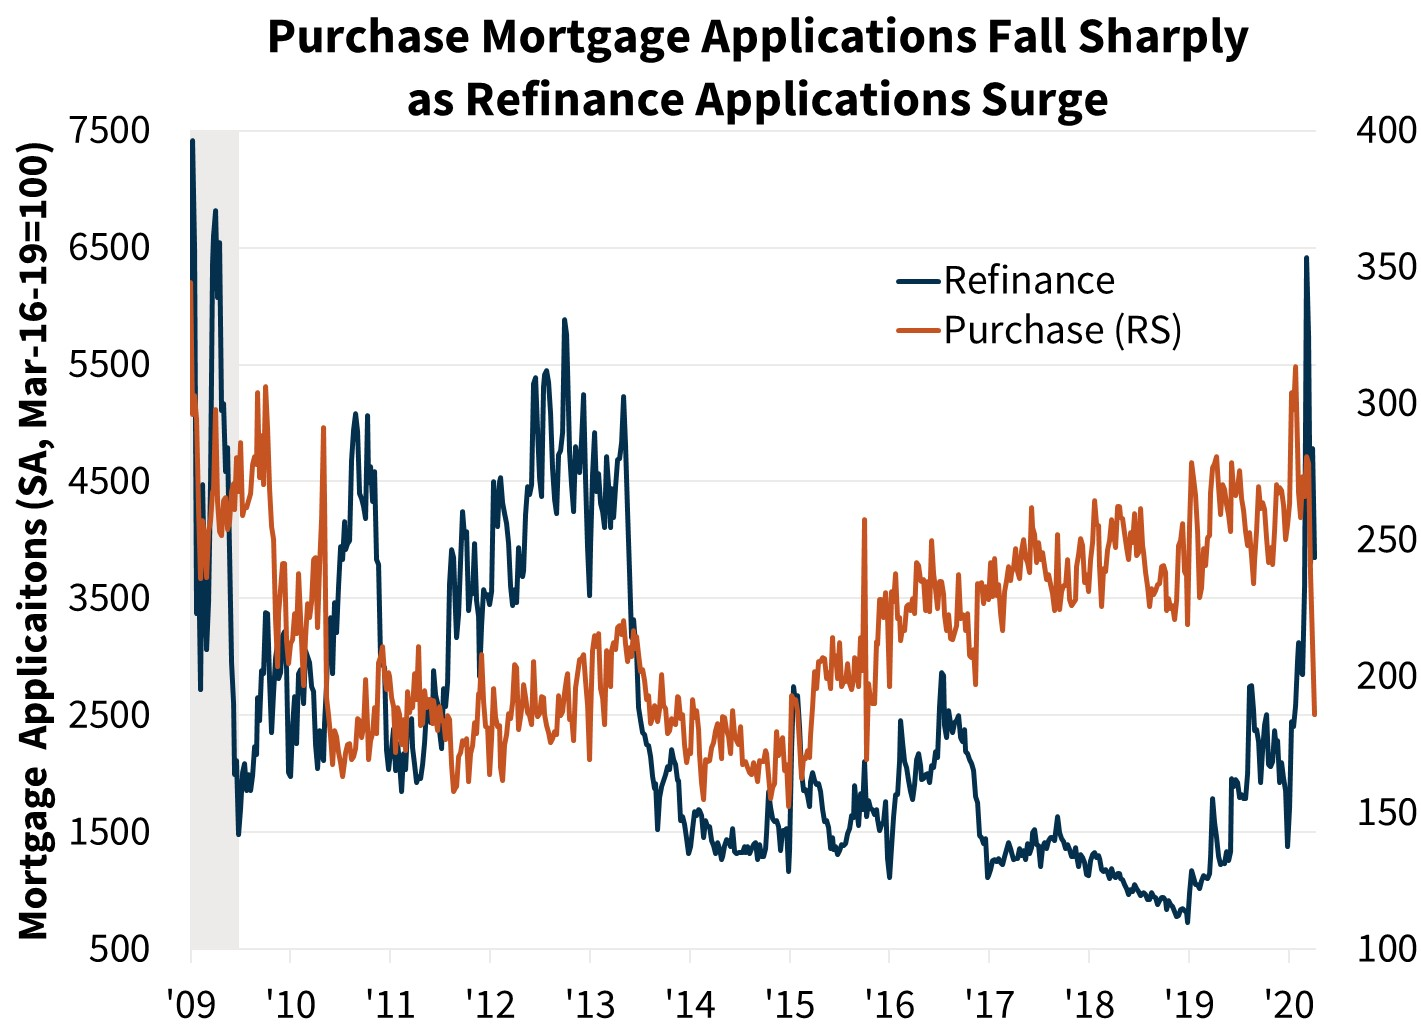 Purchase Mortgage Applications Fall Sharply as Refinance Applications Surge